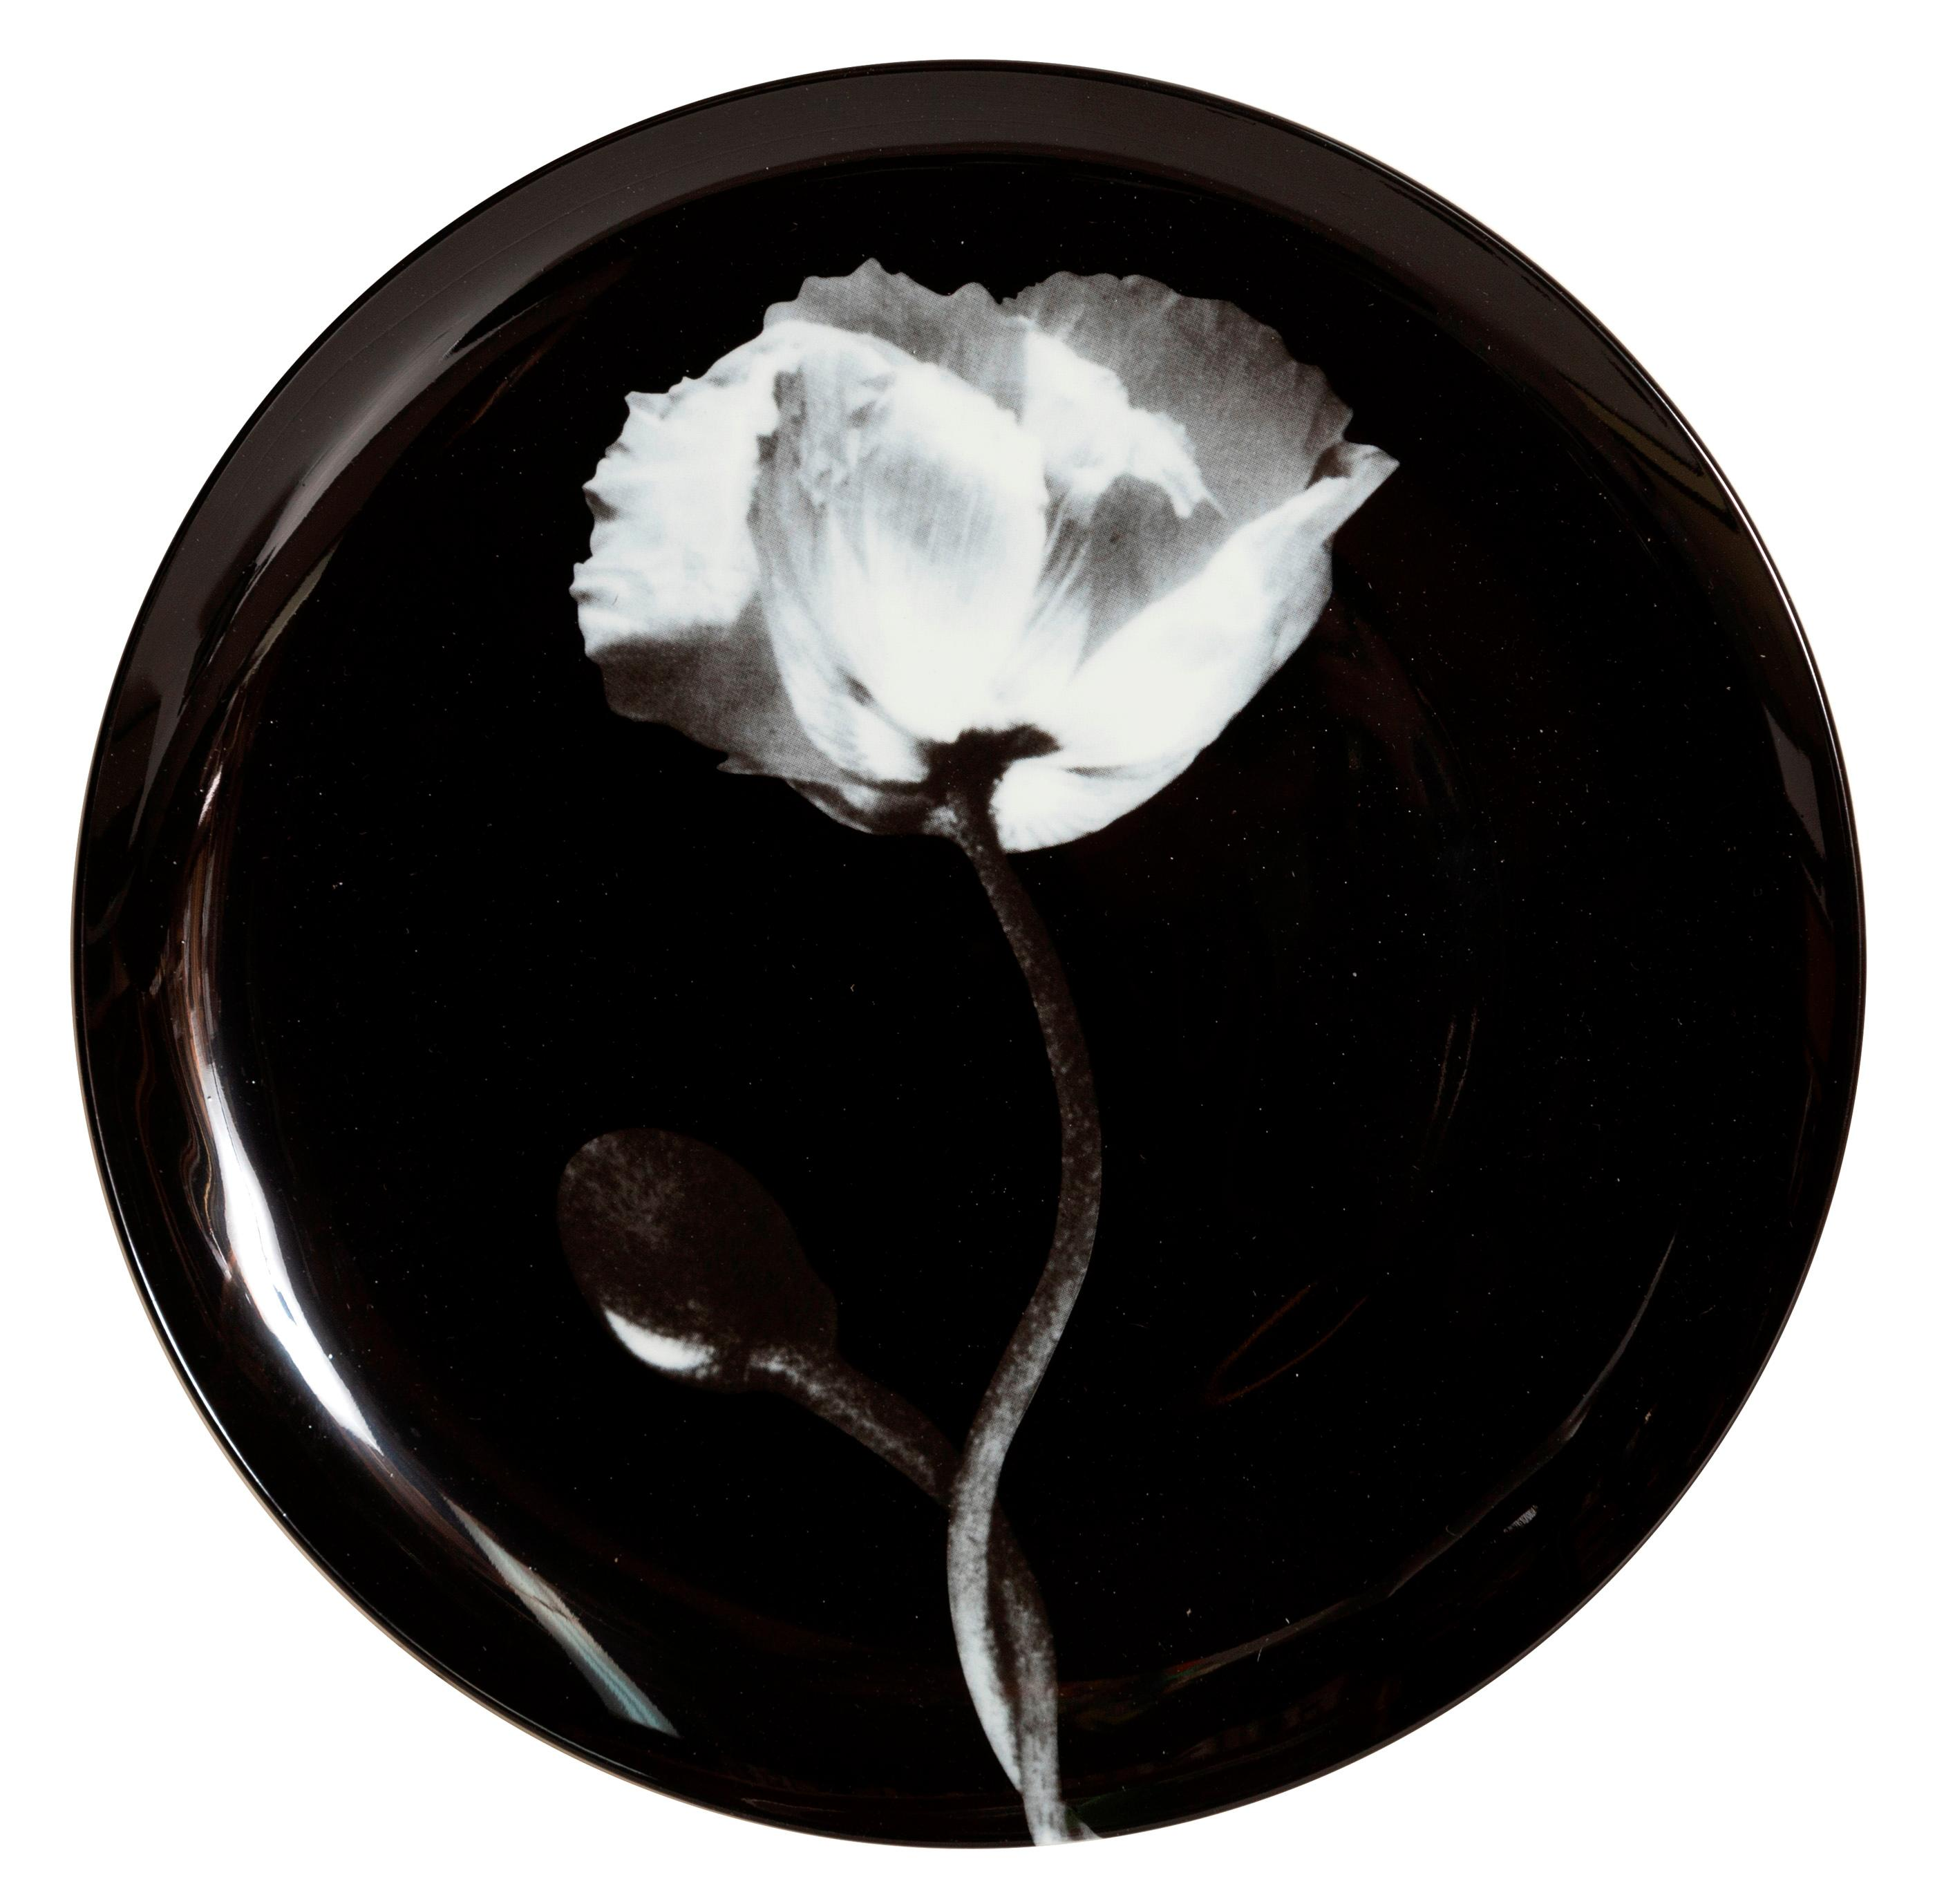 ROBERT MAPPLETHORPE, POPPY, PORCELAIN PLATE